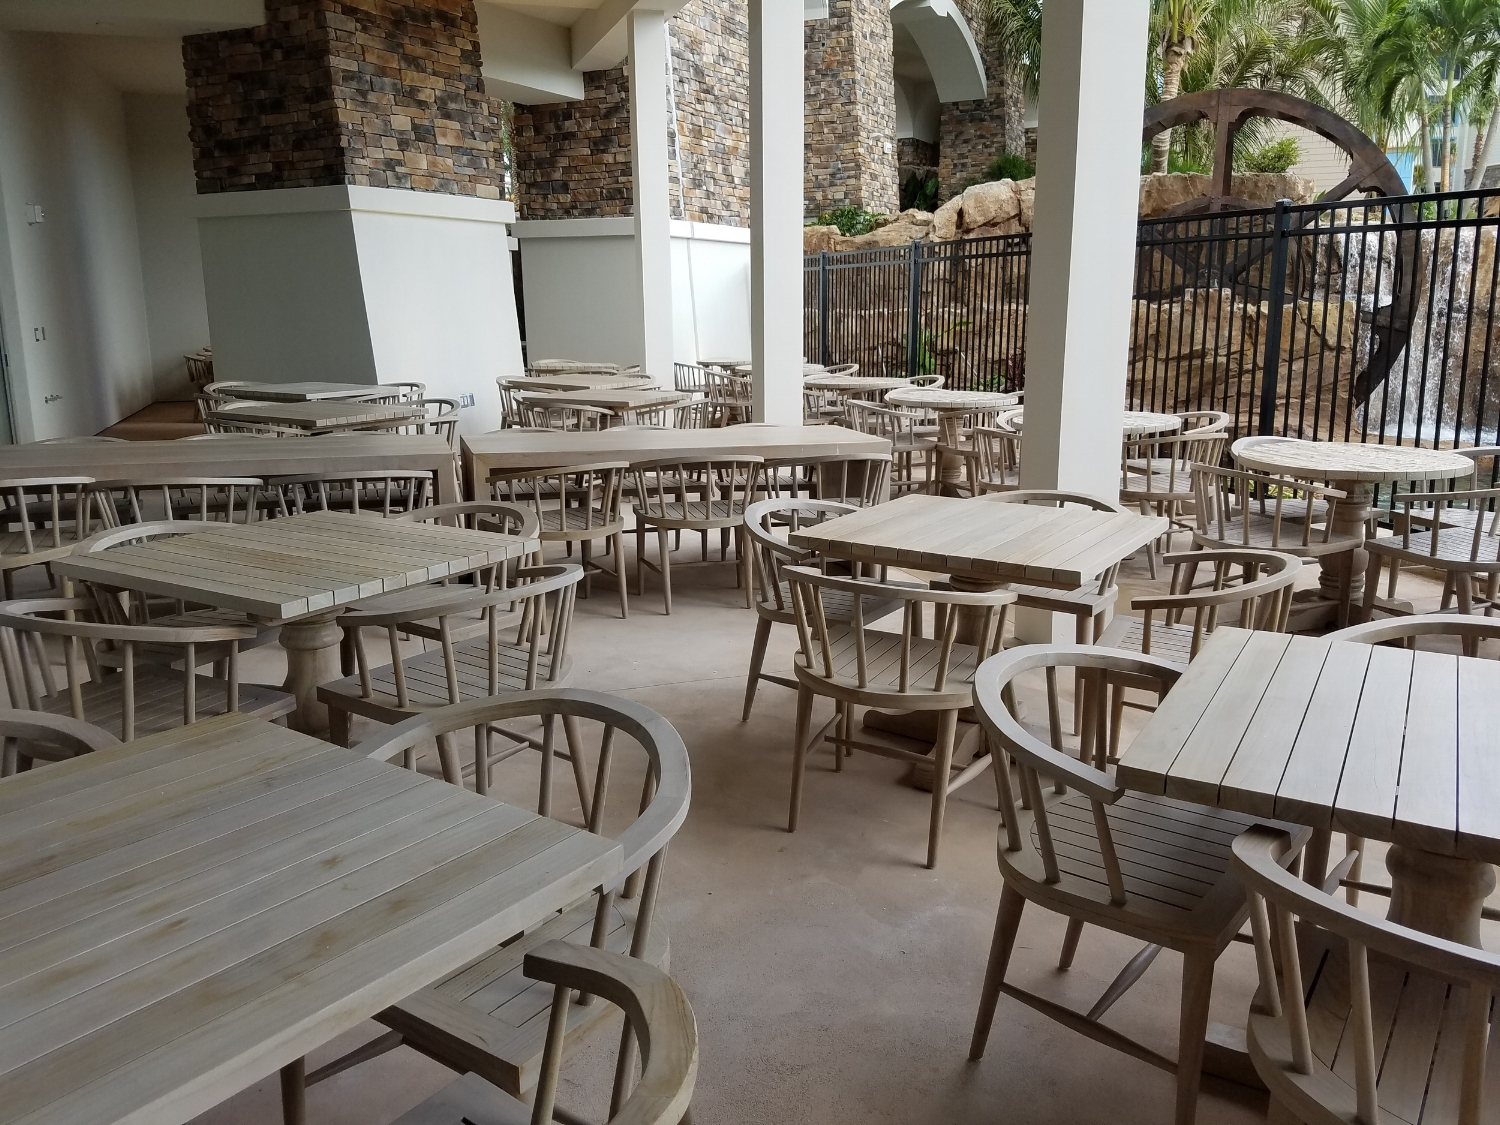 Outdoor Dining Area at Amatista Cookhouse